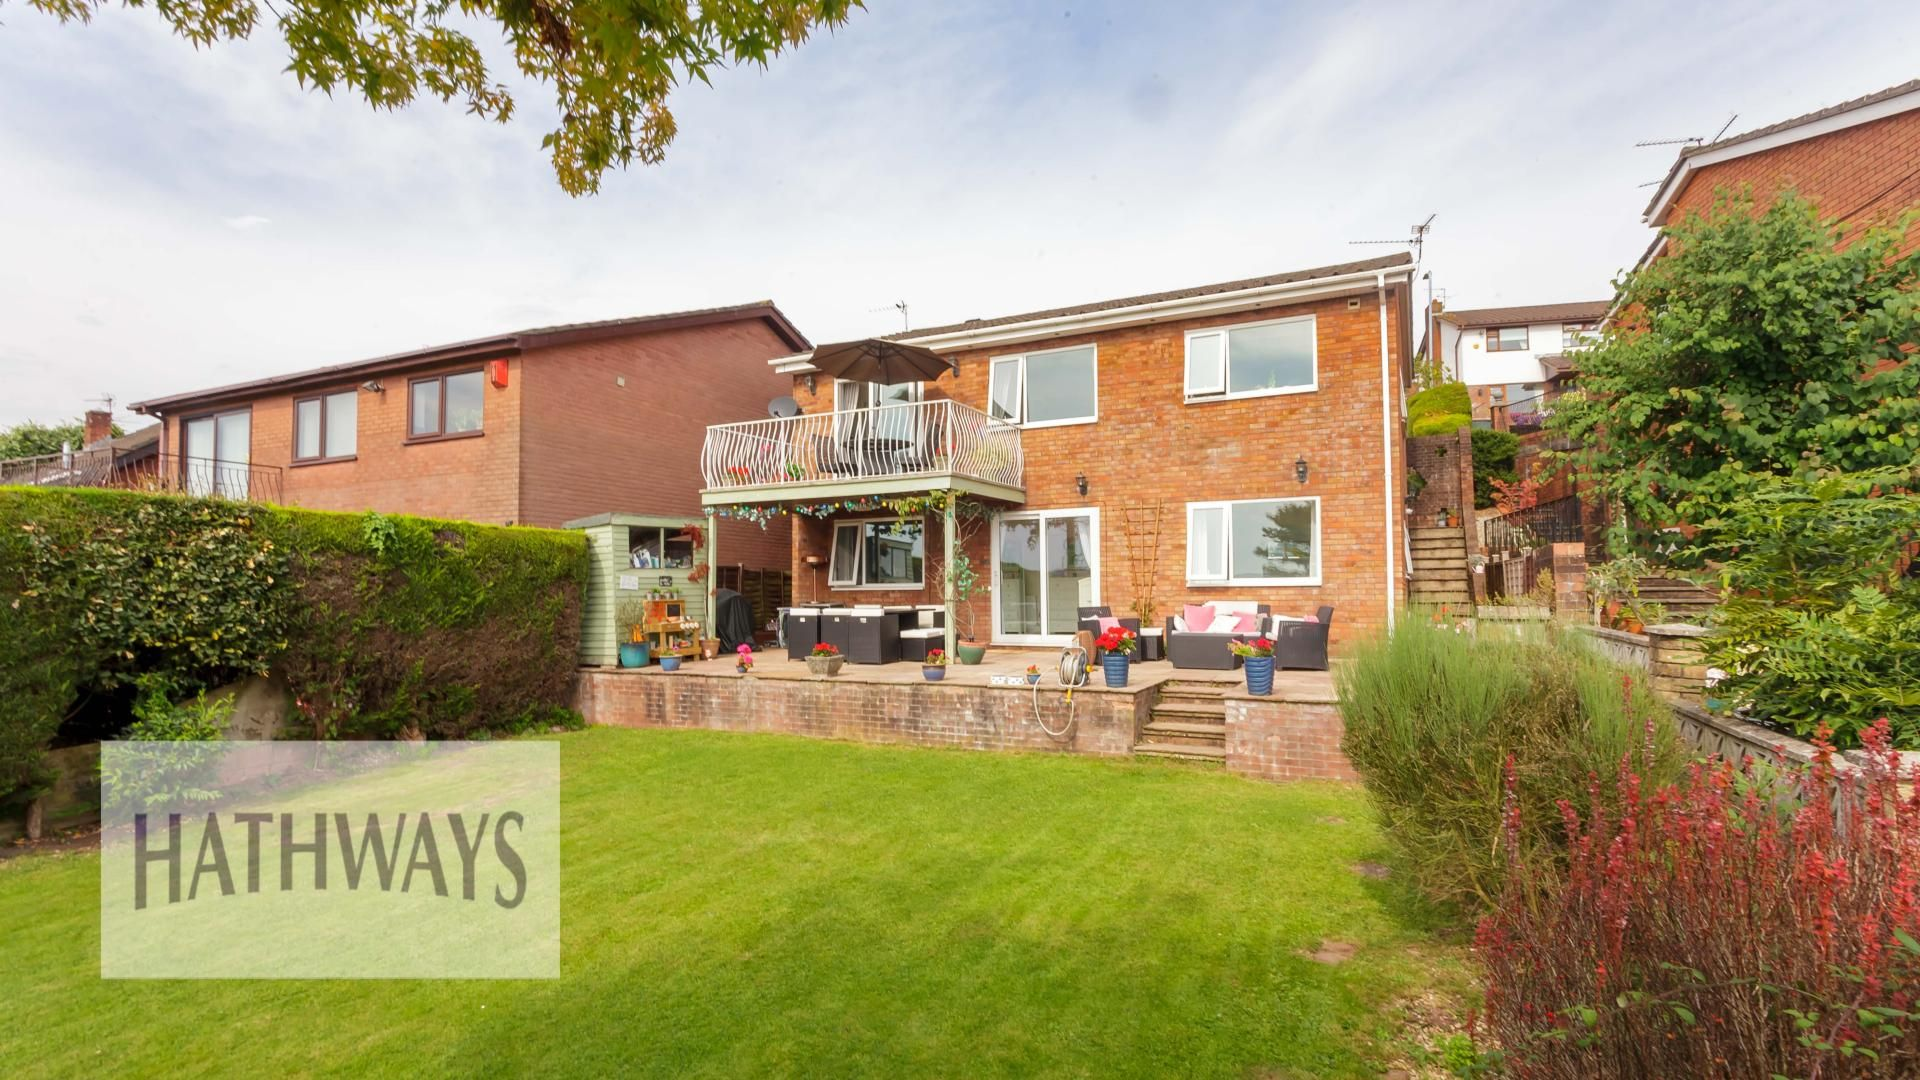 4 bed house for sale in Trinity View, NP18